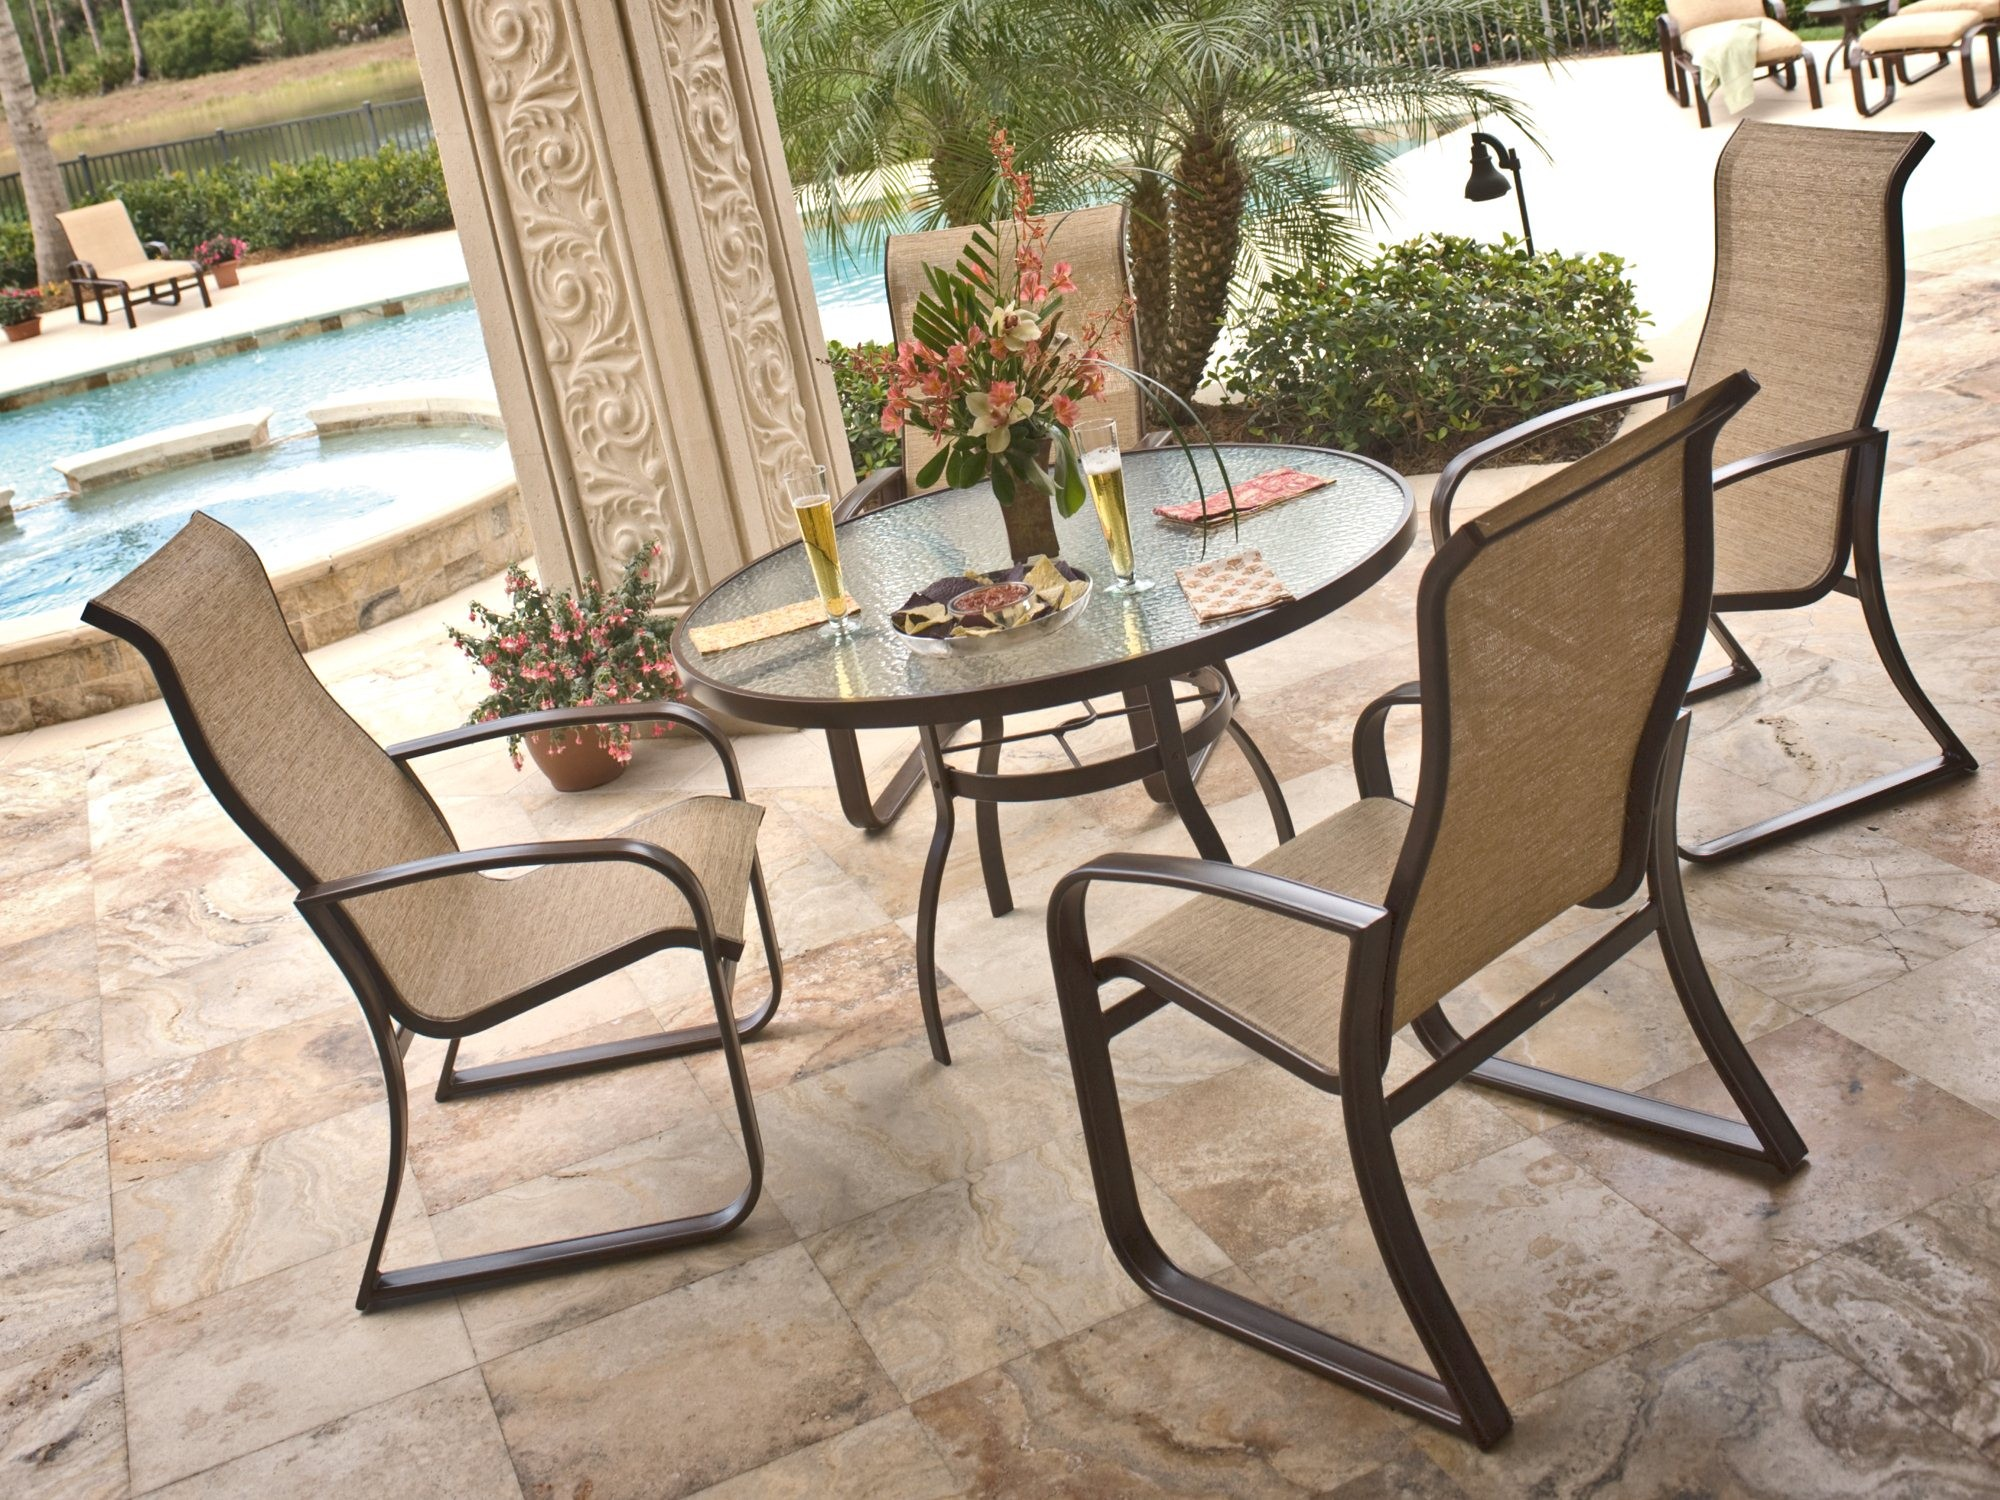 Sling Patio Chairs Set